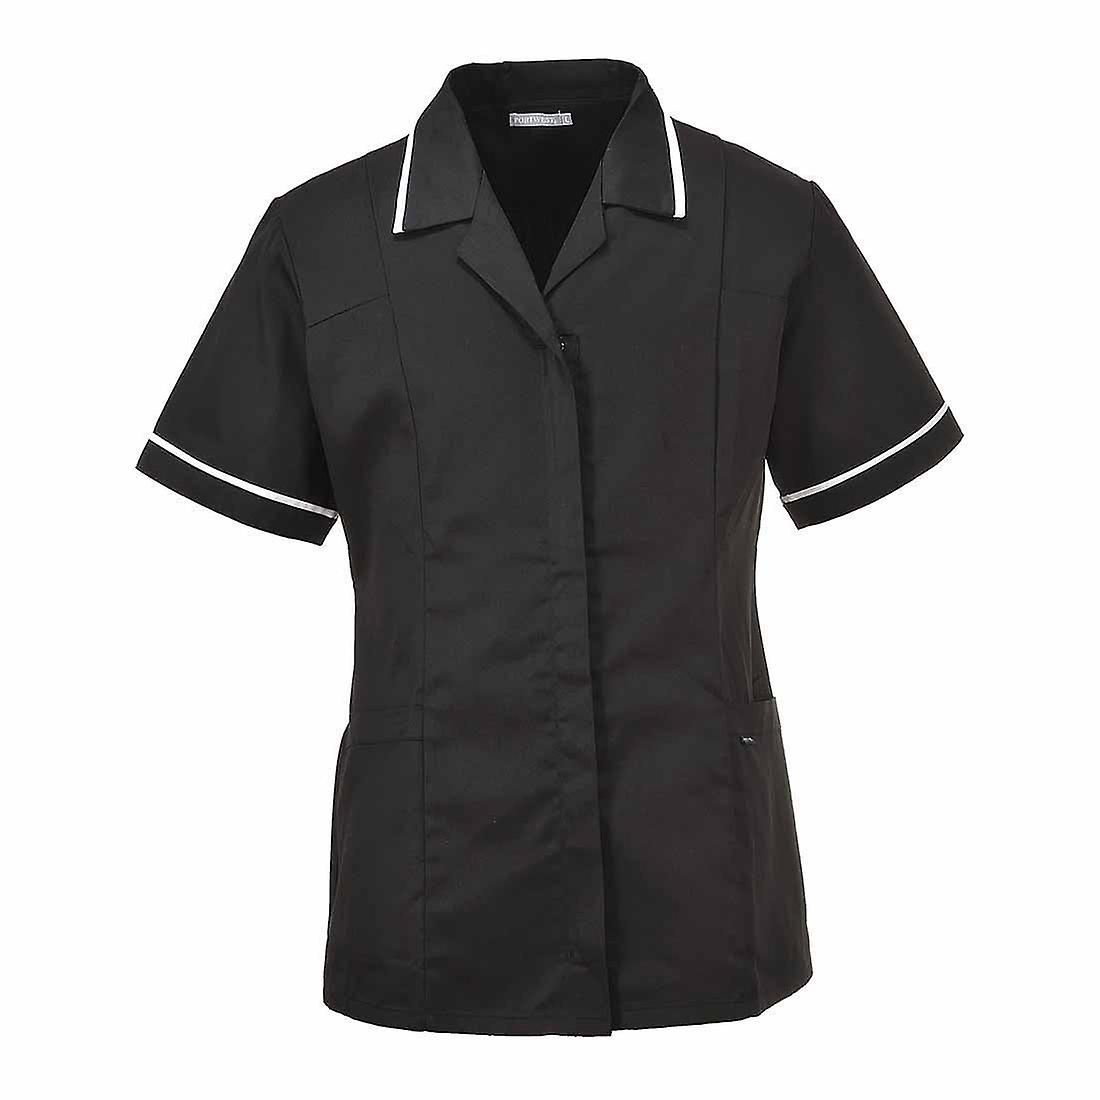 Portwest - Classic Heath Care Workwear Tunic Jacket Top